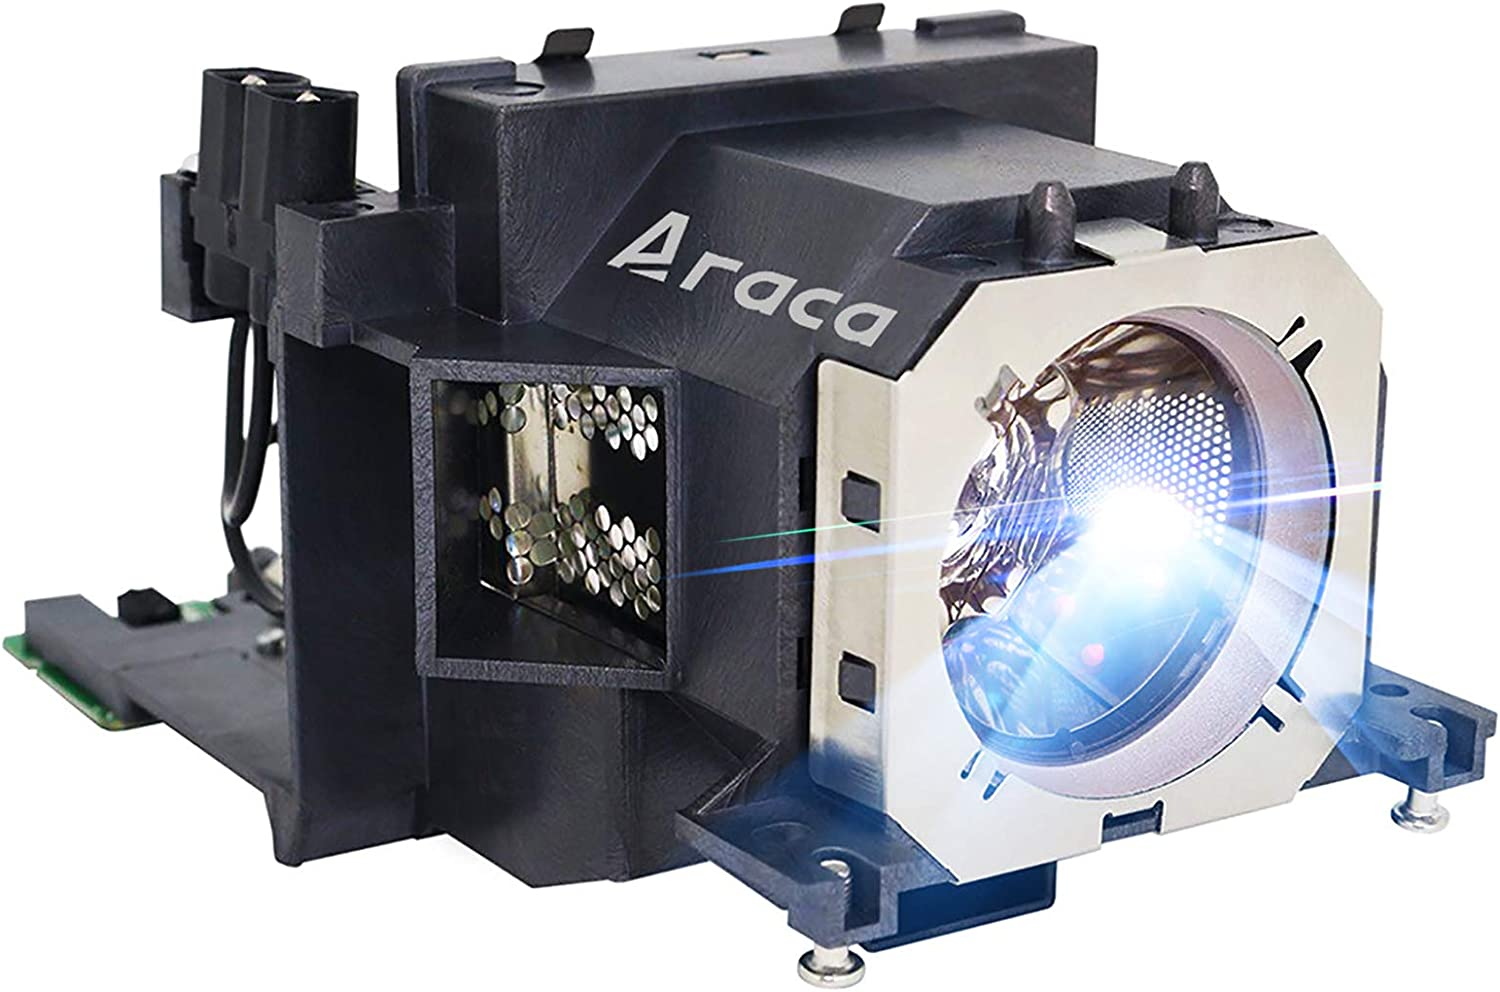 Araca ET-LAV200 Projector Lamp with Housing for Panasonic PT-VX500 VX501 VX510 VW430 VW431D VW435N VW440 VX505N VW430U VW431DU Replacement Projector Lamp¡